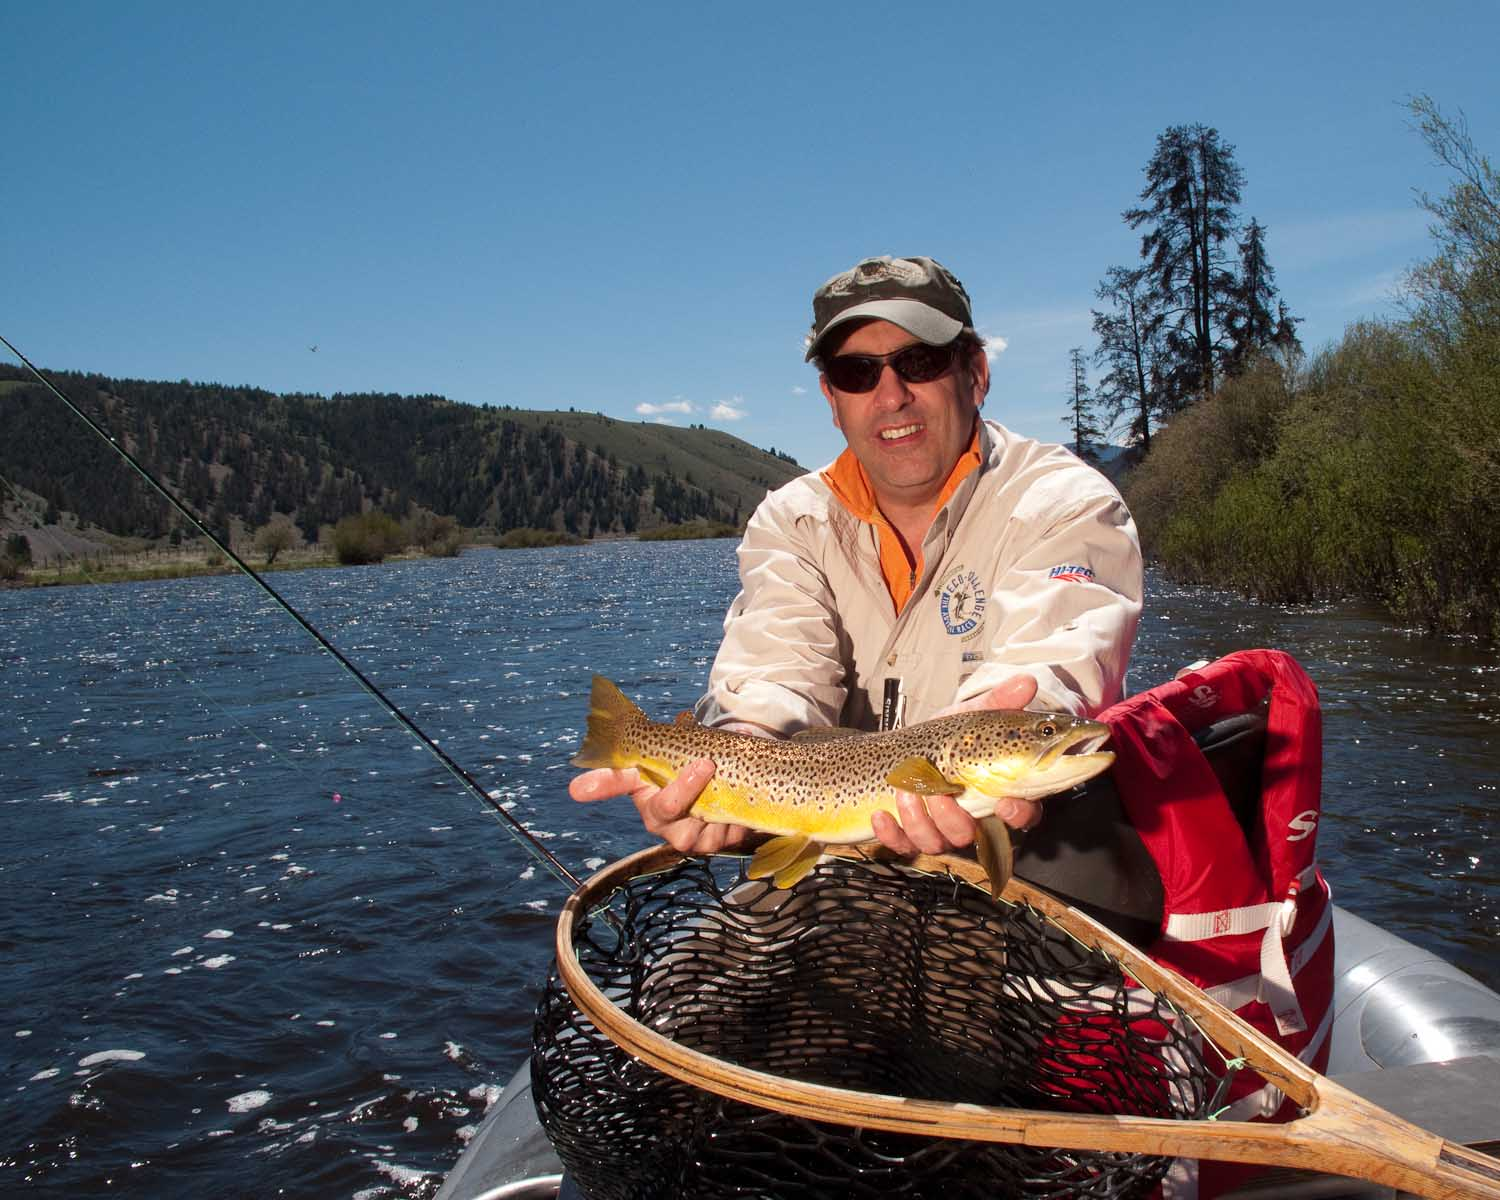 Happy flyfisher with a big, fat brown trout, caught on a dry fly from the Big Hole River.